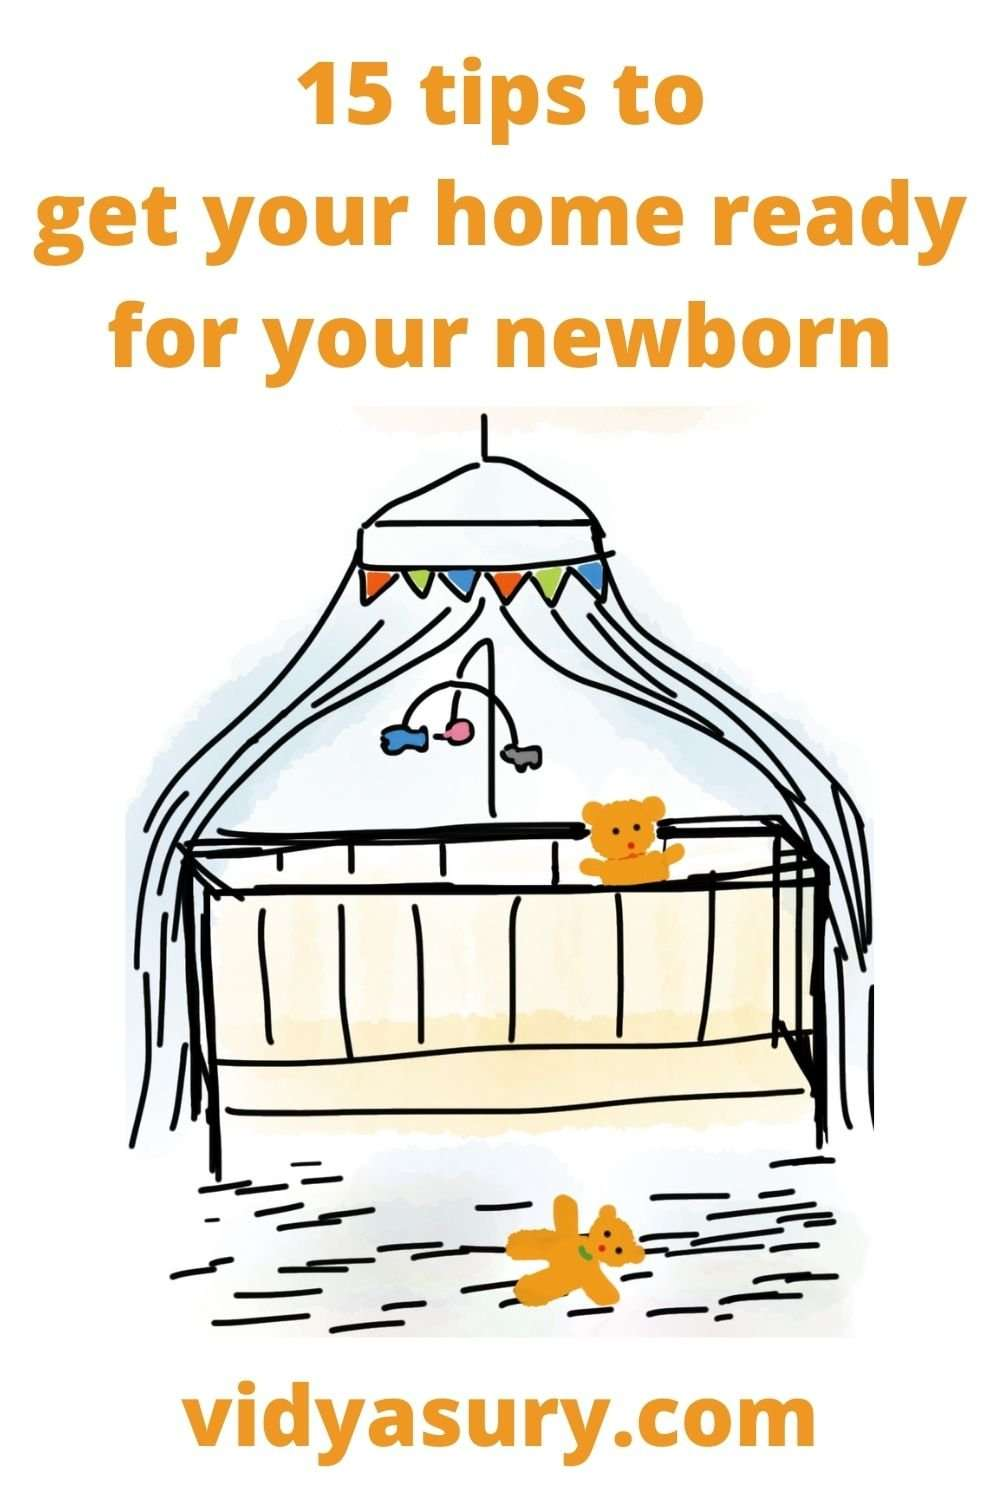 15 tips to get your home ready for your newborn